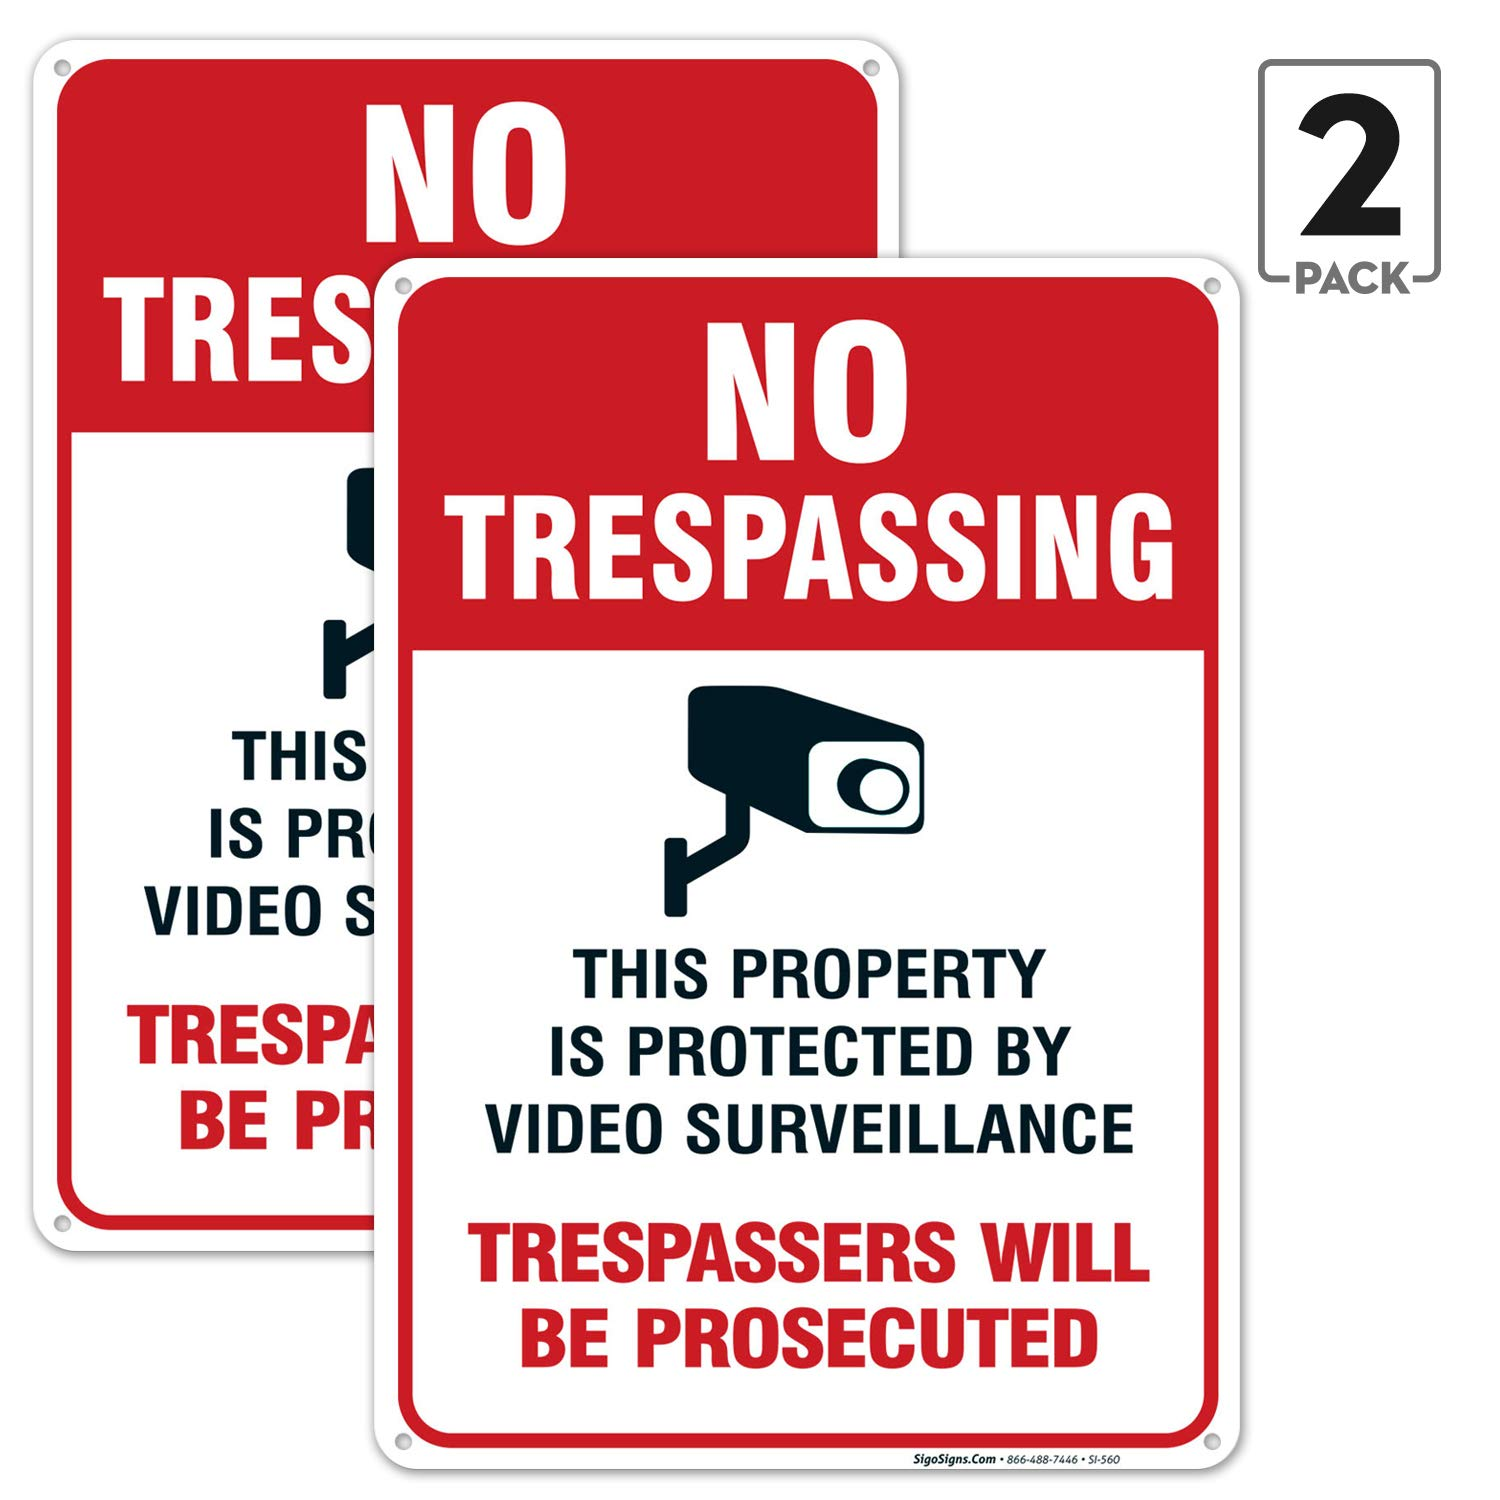 (2 Pack) No Trespassing Sign, Video Surveillance Sign, 10x14 Rust Free Aluminum UV Printed, Easy to Mount Weather Resistant Long Lasting Ink Made in USA by SIGO SIGNS by Sigo Signs